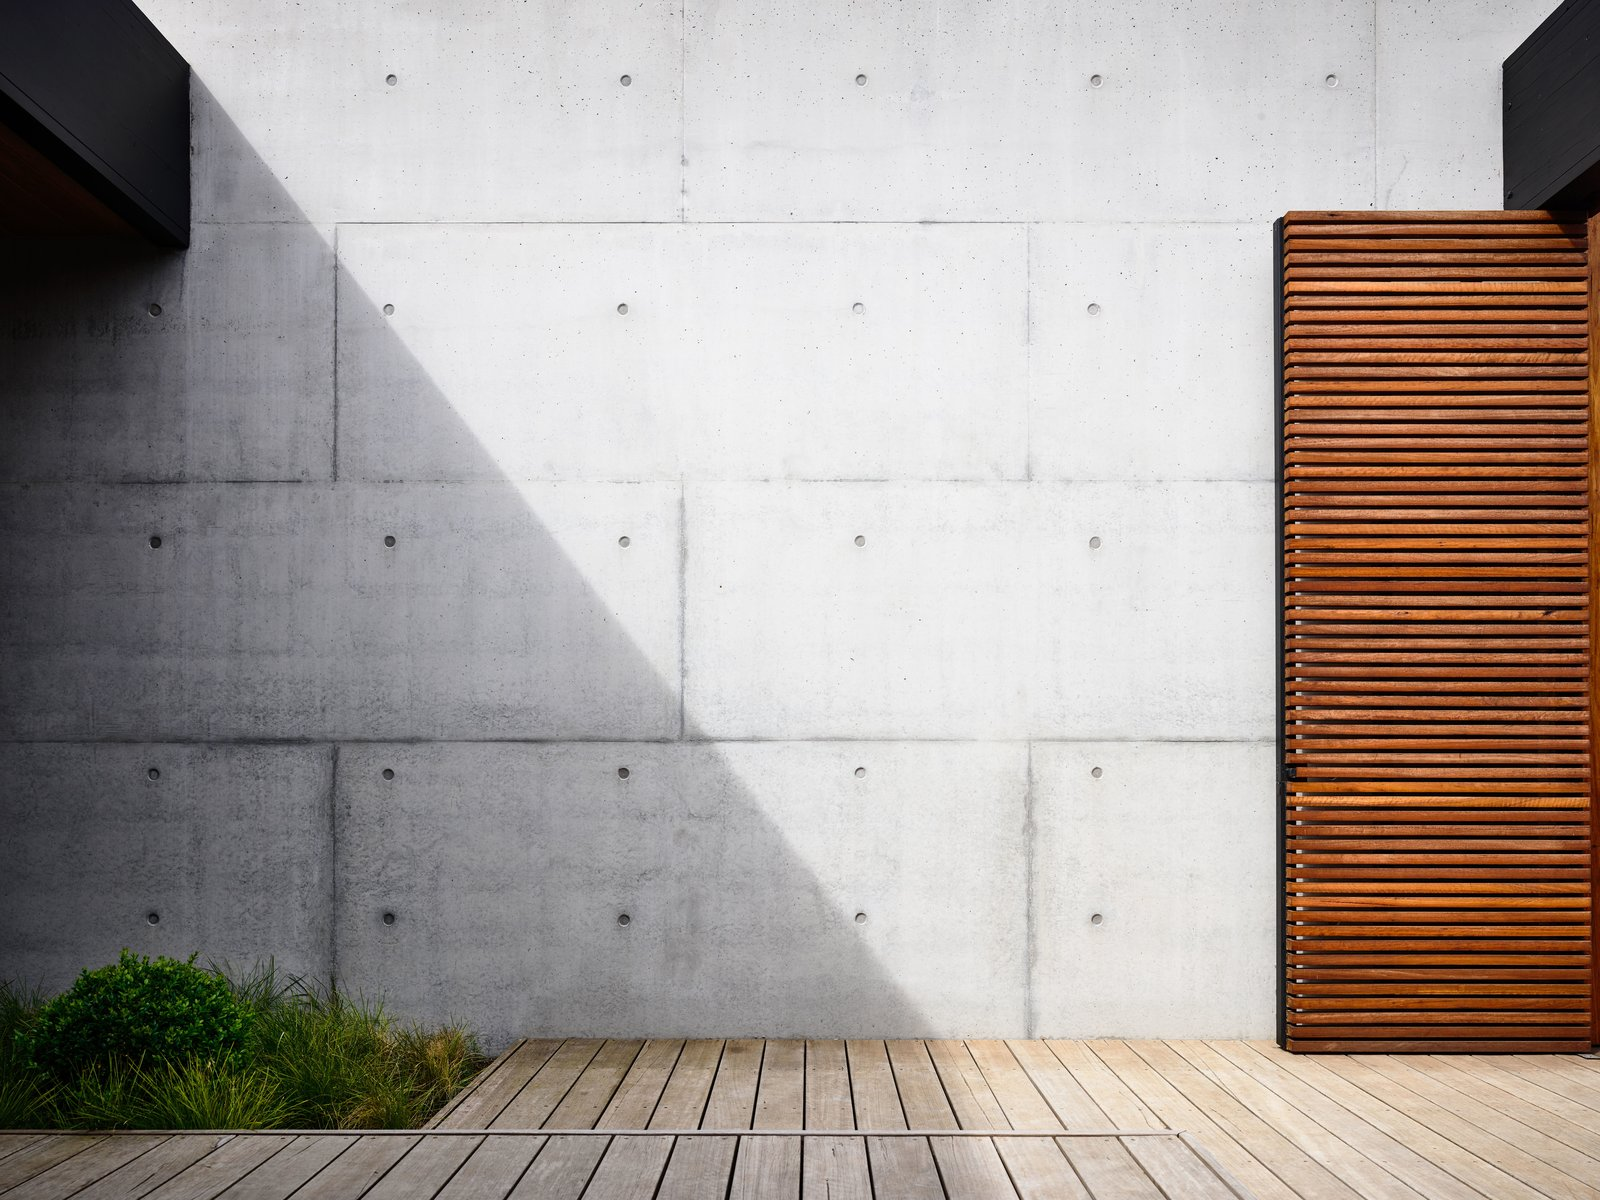 Wood Siding Material, Concrete Siding Material, House Building Type, Flat RoofLine, and Beach House Building Type  DS House, Blairgowrie